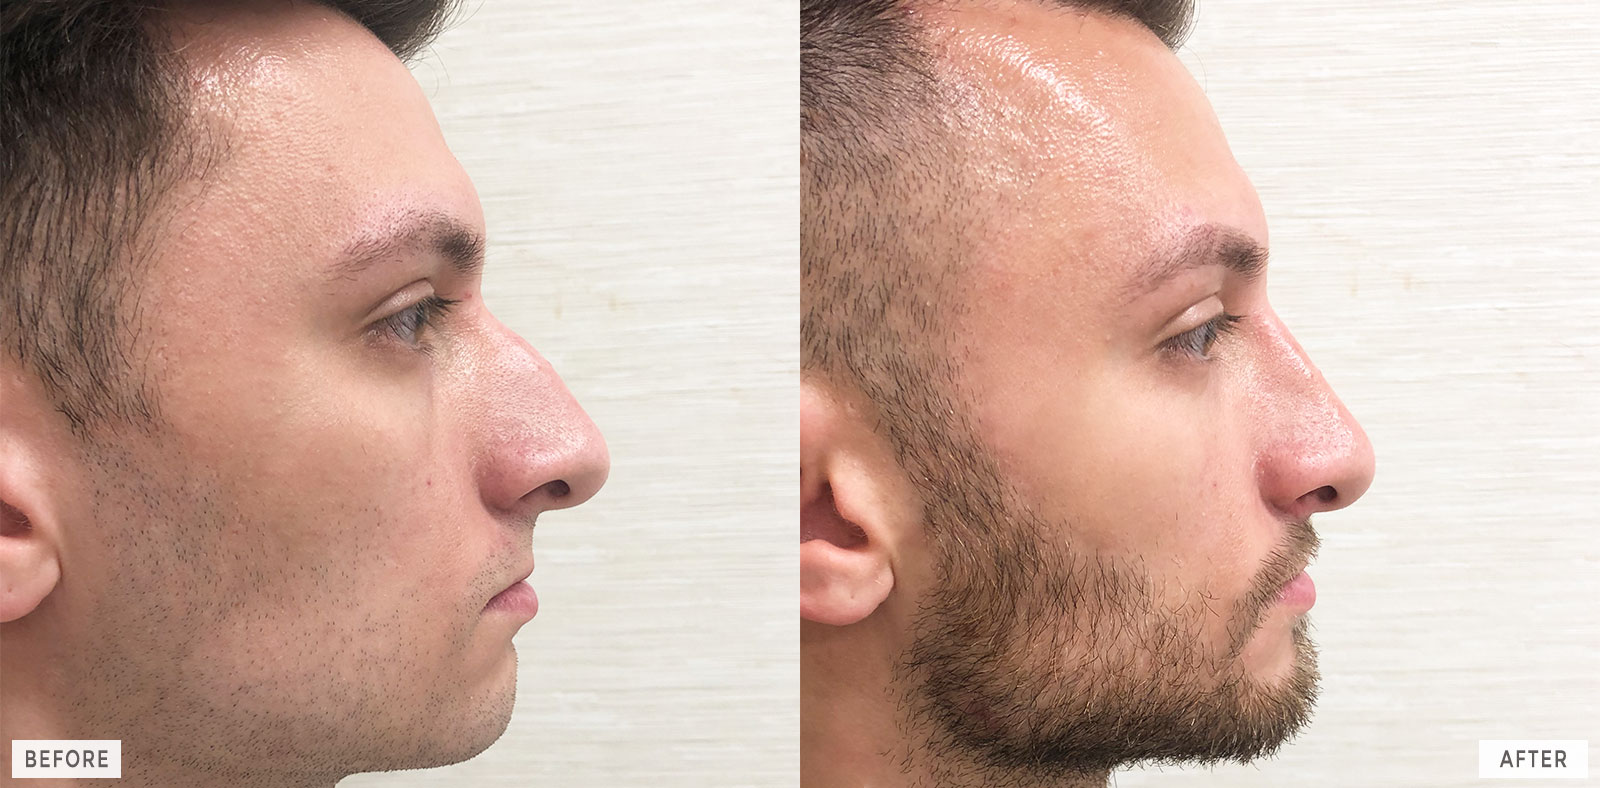 philadelphia-cosmetic-rhinoplasty-facelift-before-after_11c